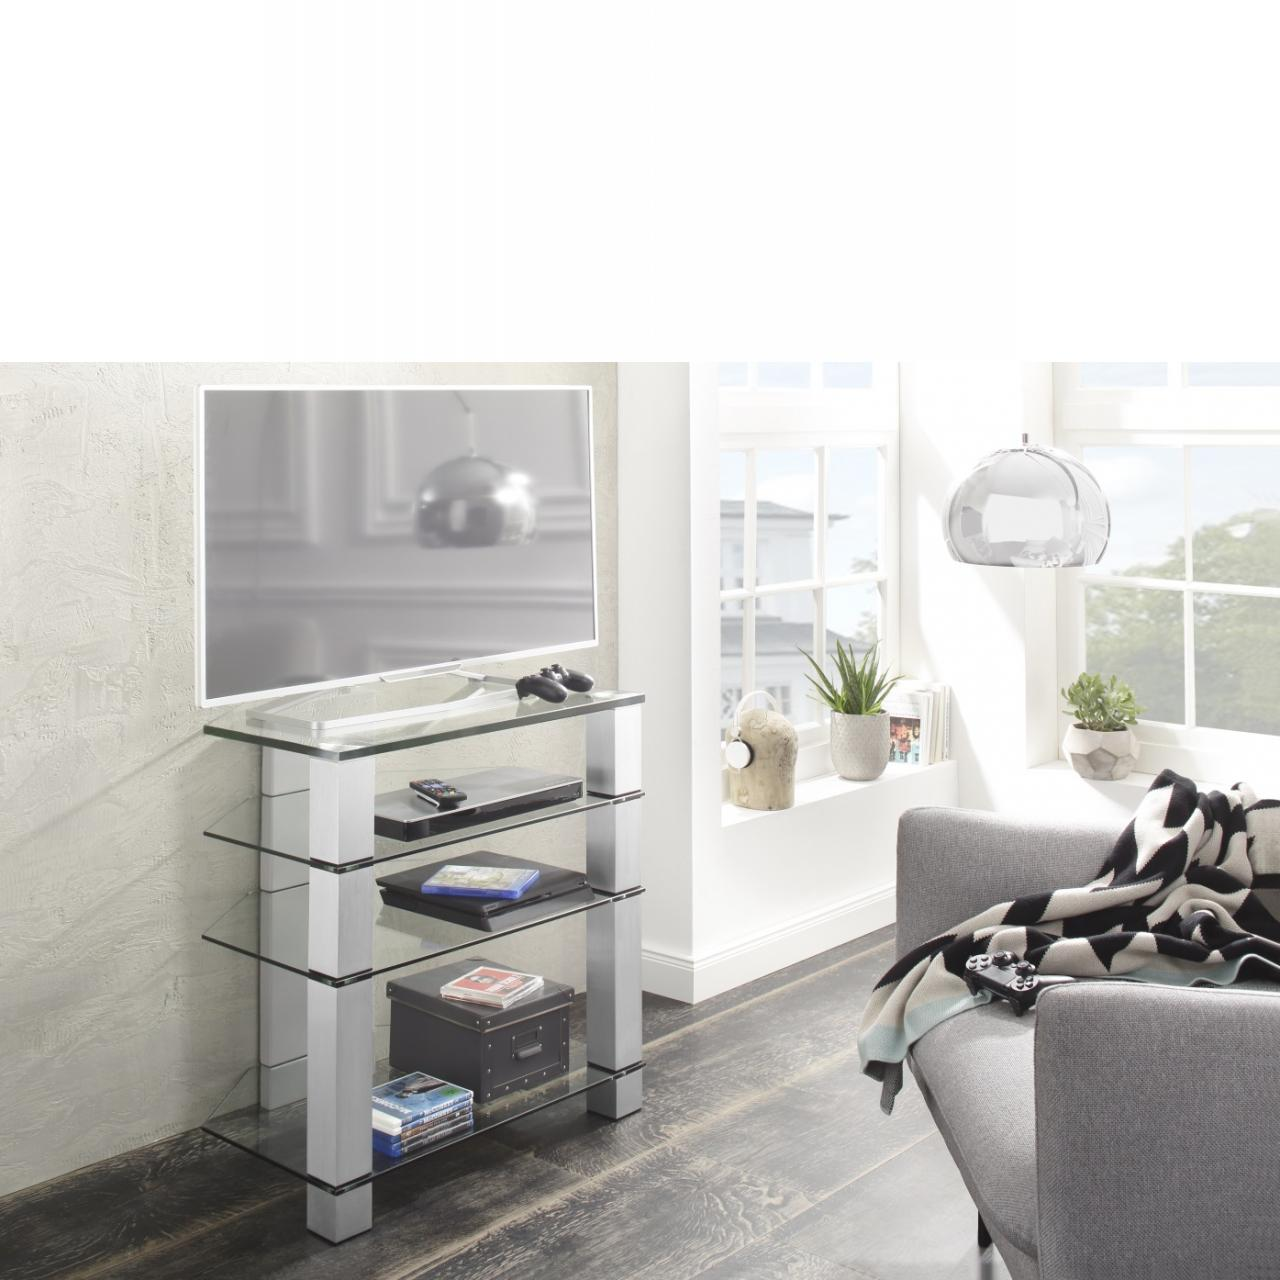 tv rack 1654 tv hifi m bel wohnen m bel j hnichen center gmbh. Black Bedroom Furniture Sets. Home Design Ideas